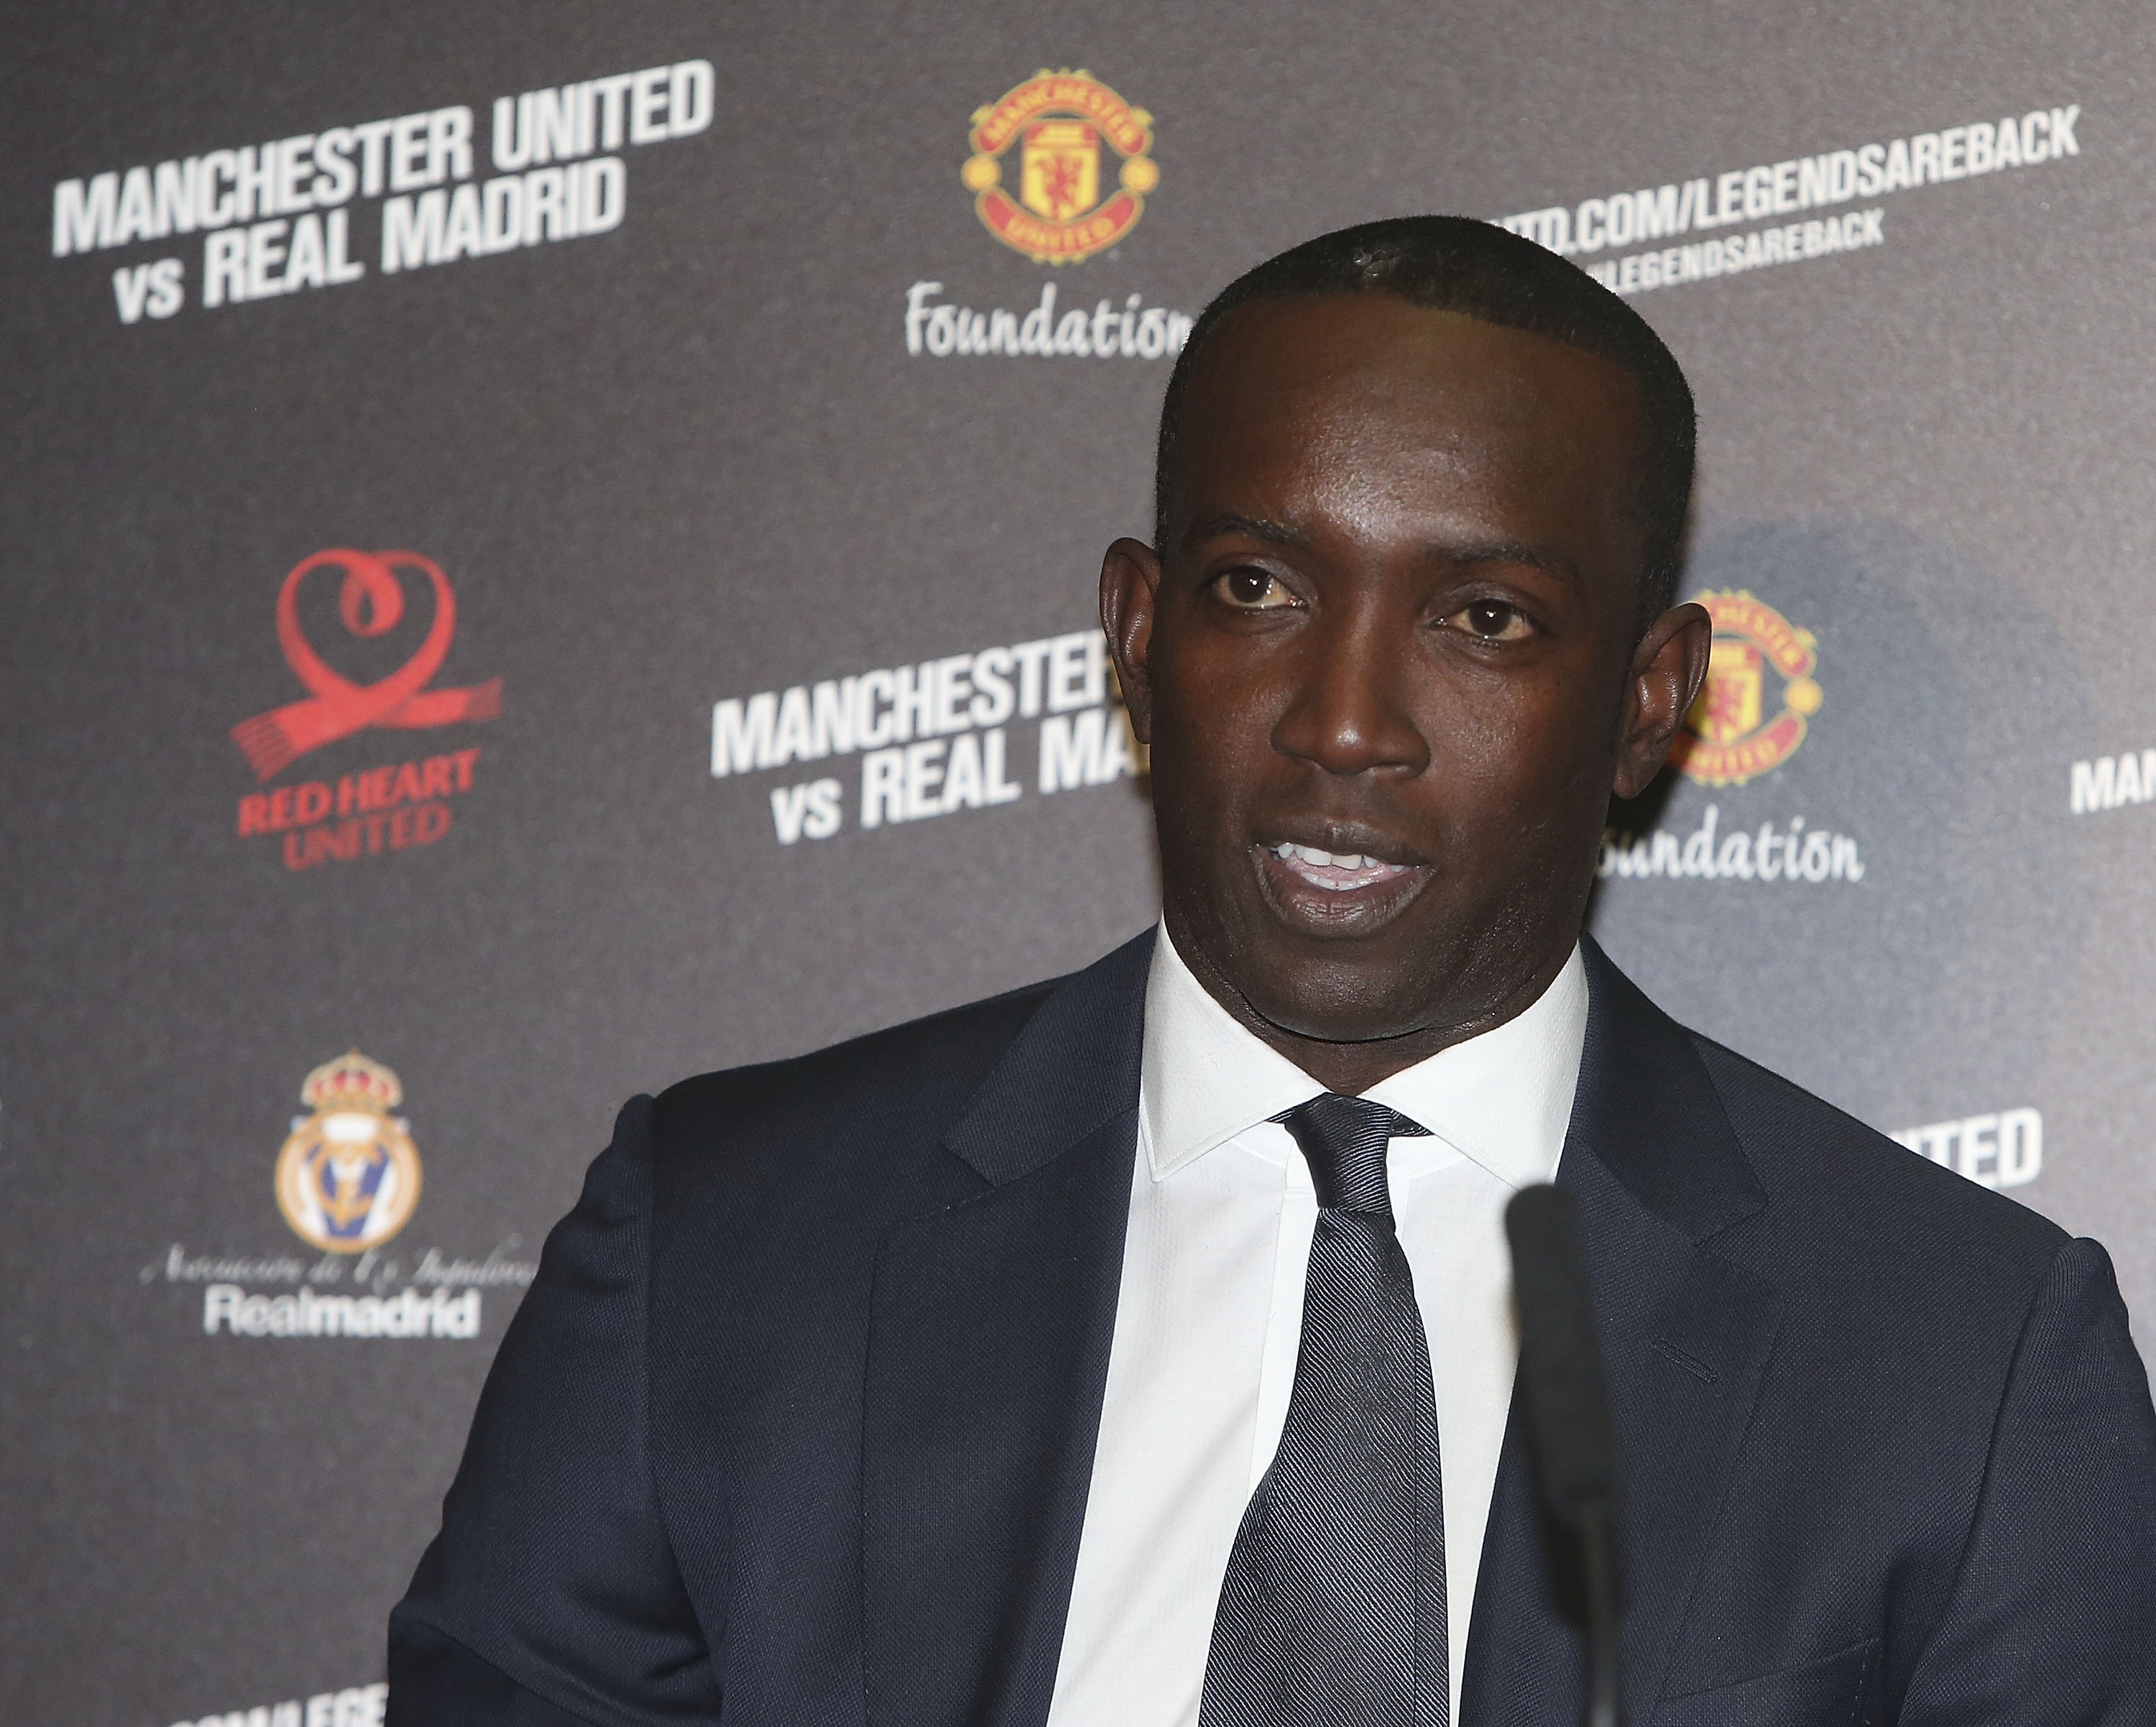 Manchester United legend Dwight Yorke 'denied' entry to Donald Trump's USA due to Iranian stamp in passport